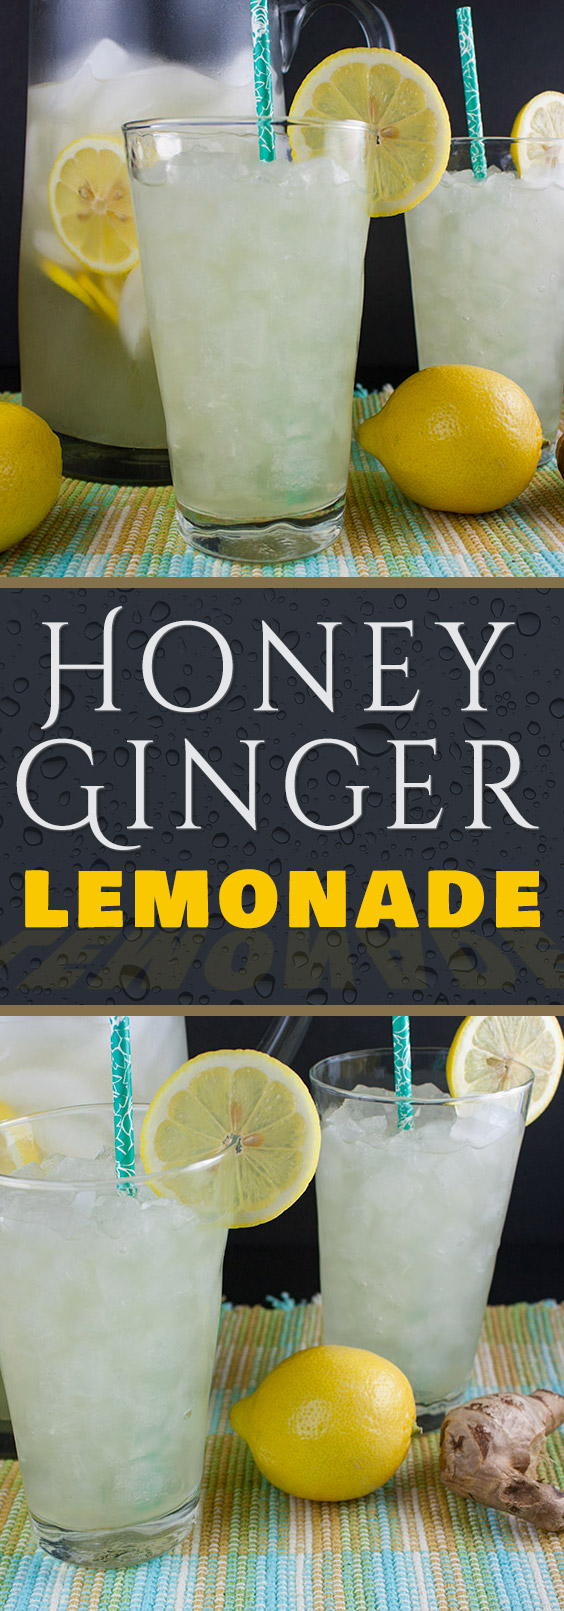 Honey Ginger Lemonade - Not only crisp and refreshing it's also healthy. Fresh, lightly sweet and tangy drink great for any time of the year.